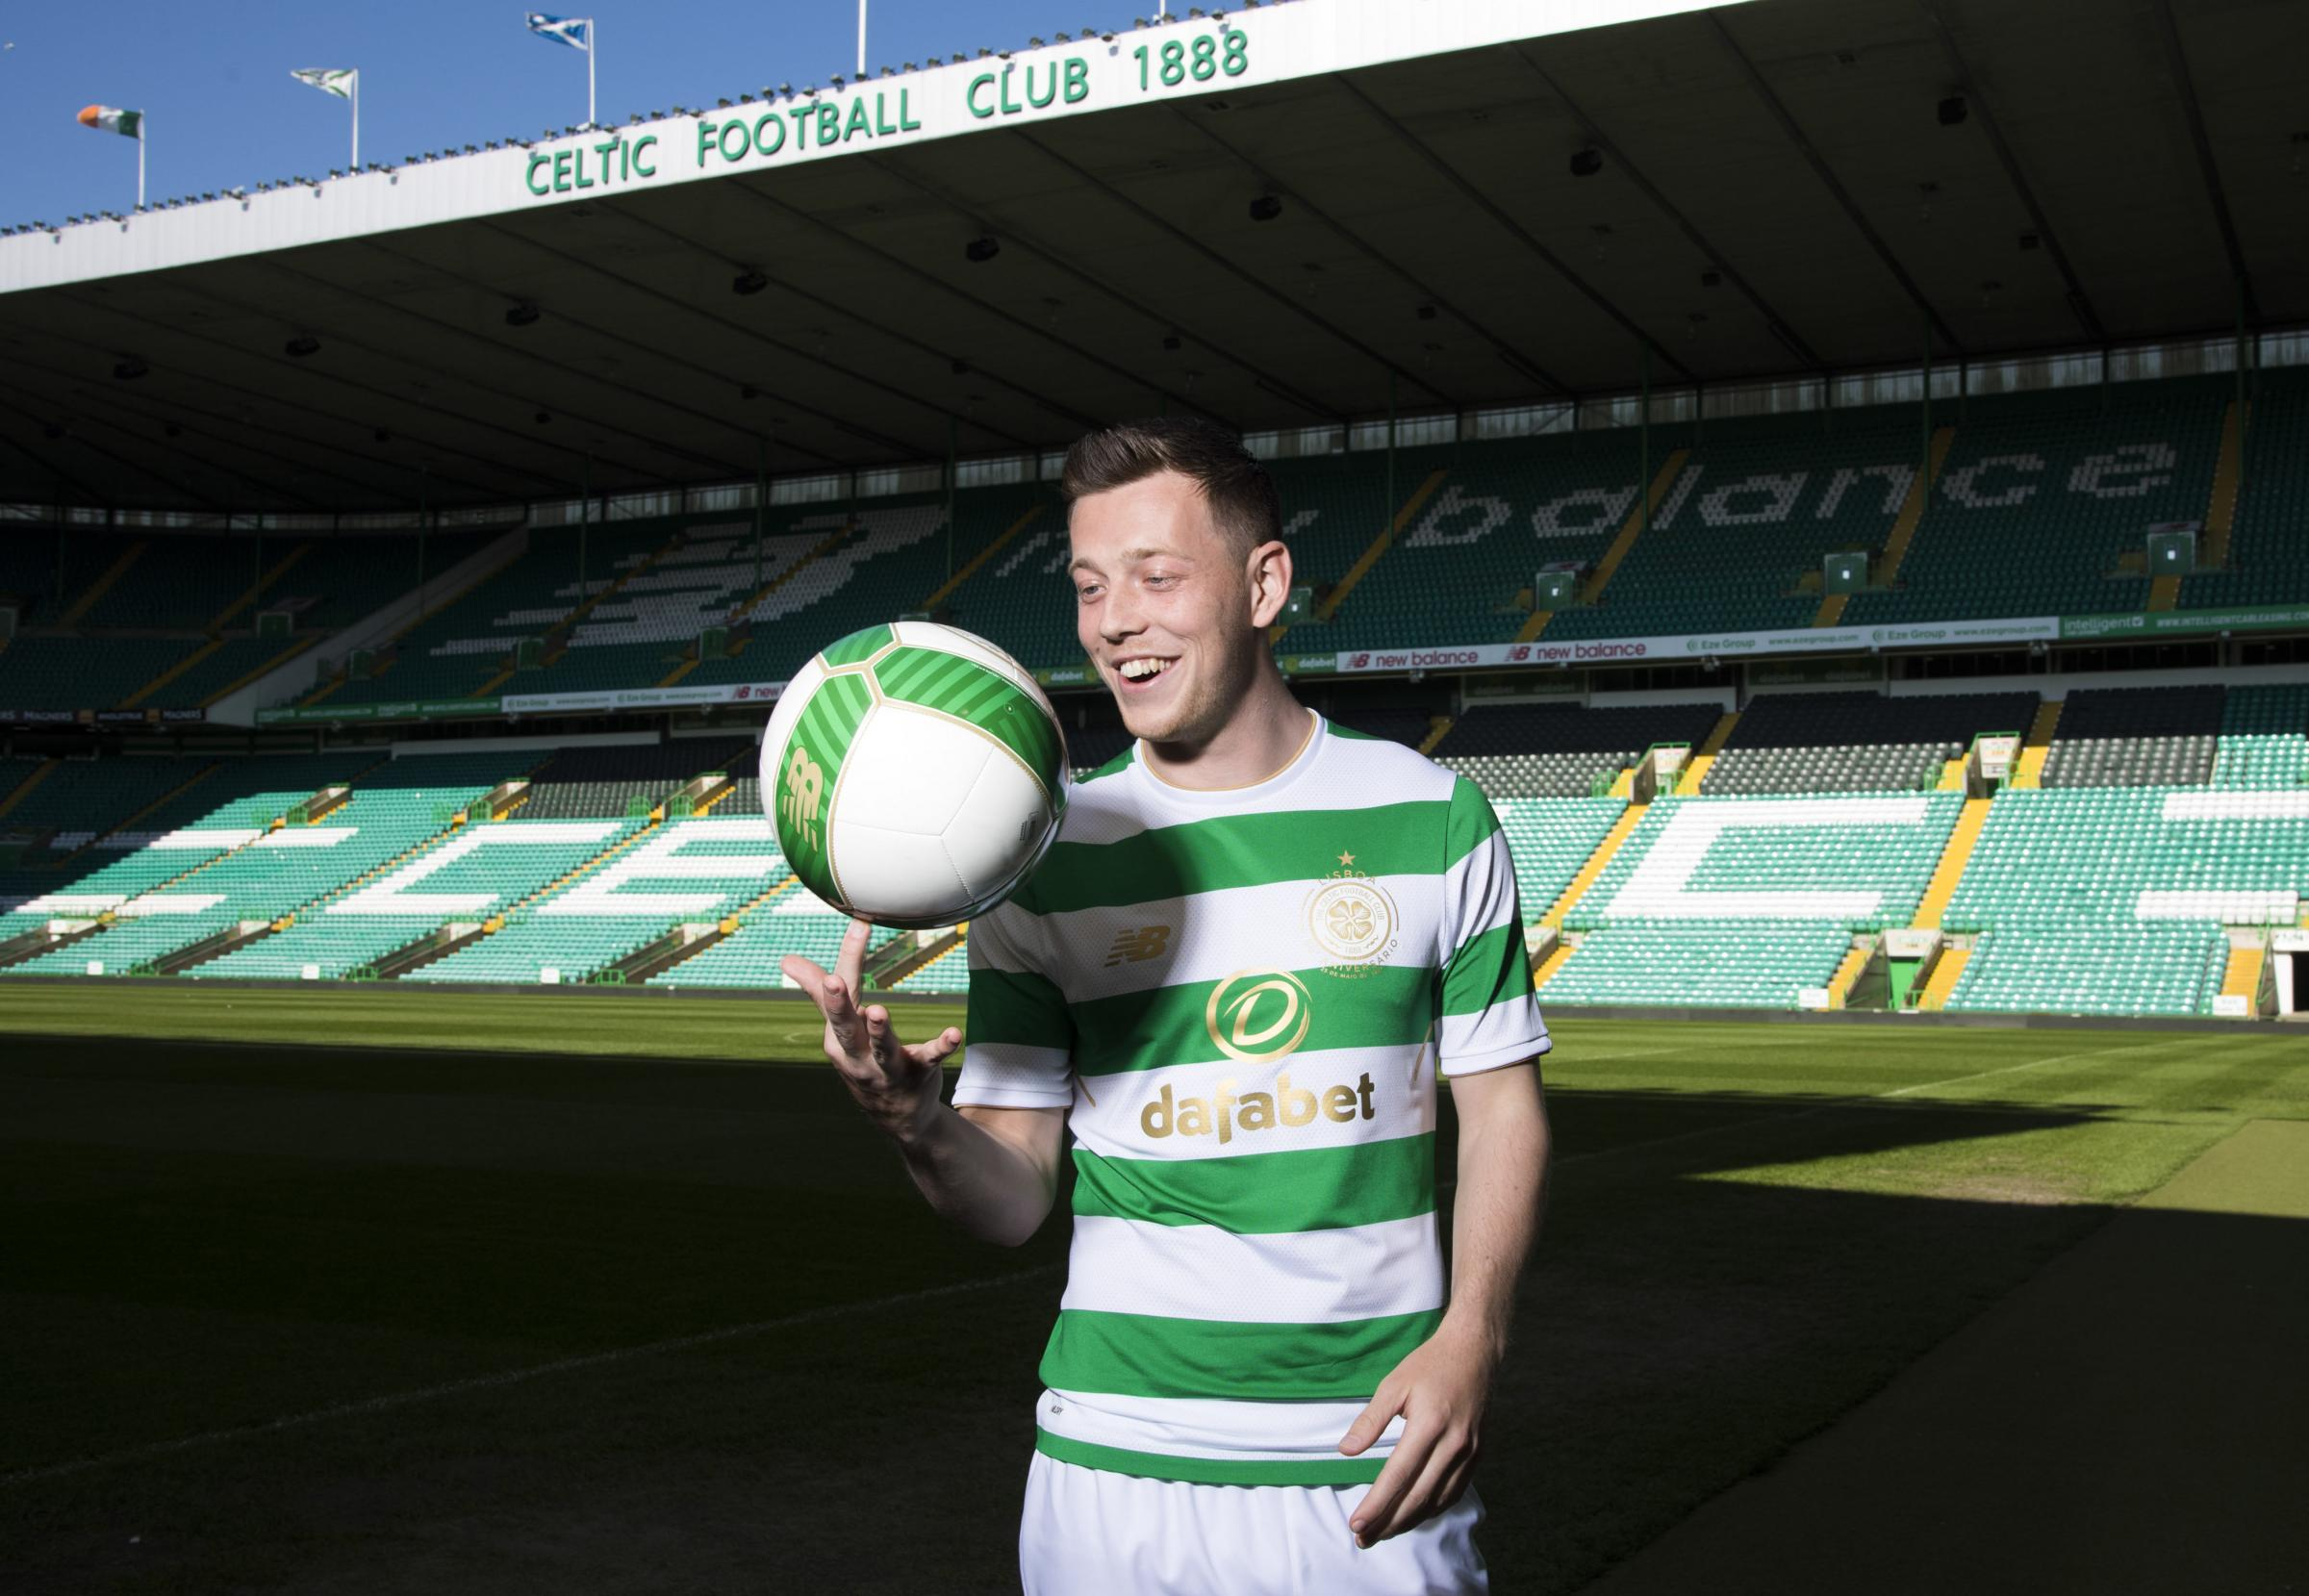 Callum McGregor: Celtic can top their stellar season – by making more of an impact in Europe